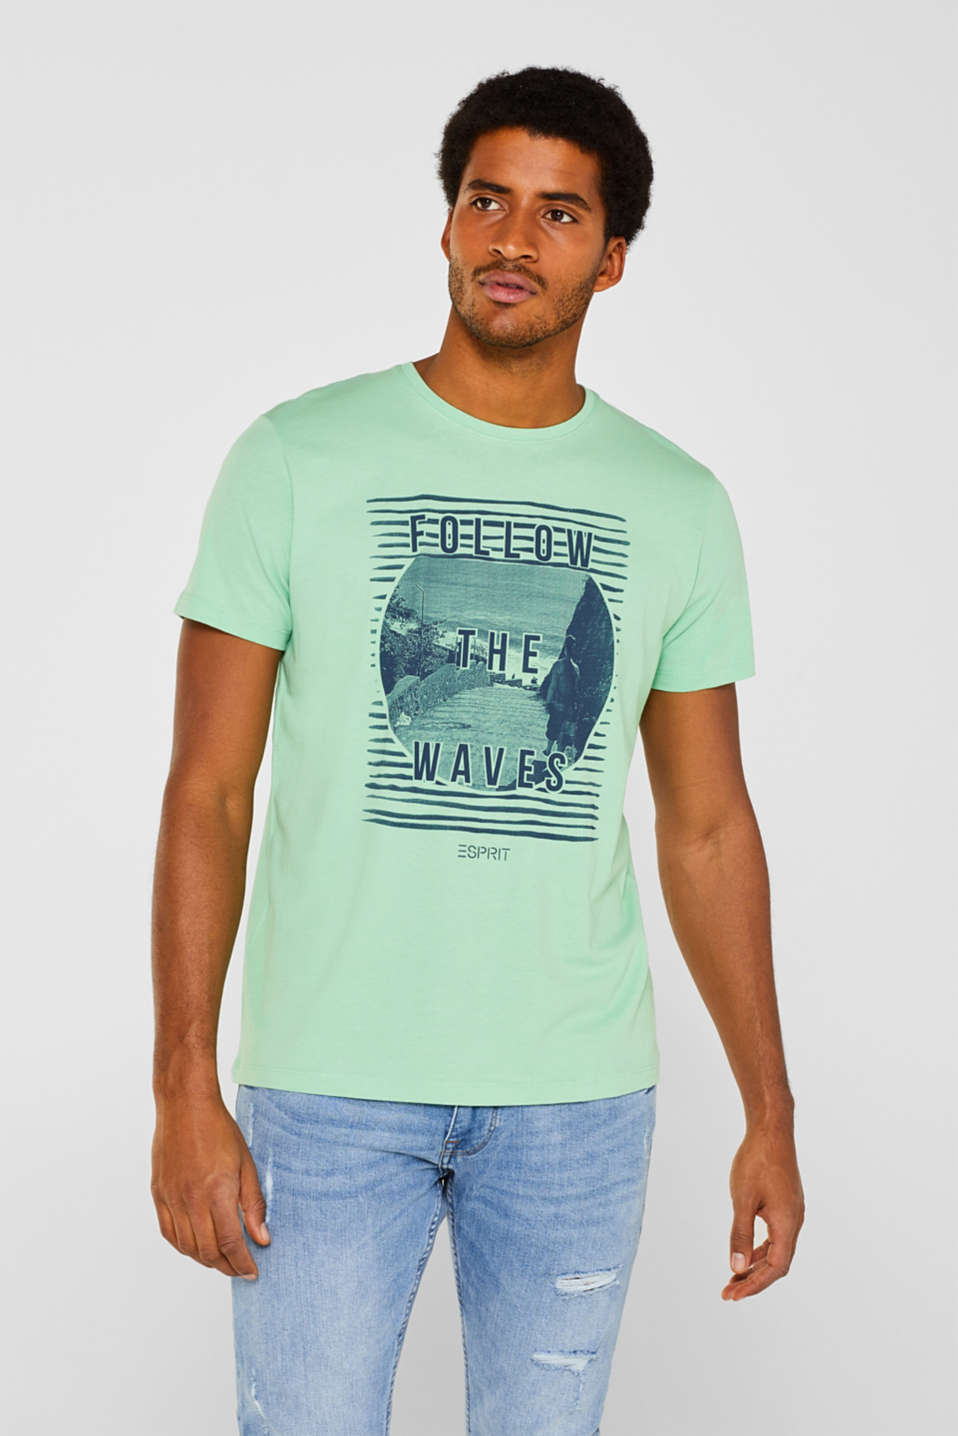 Esprit - Jersey T-shirt with photo print, 100% cotton